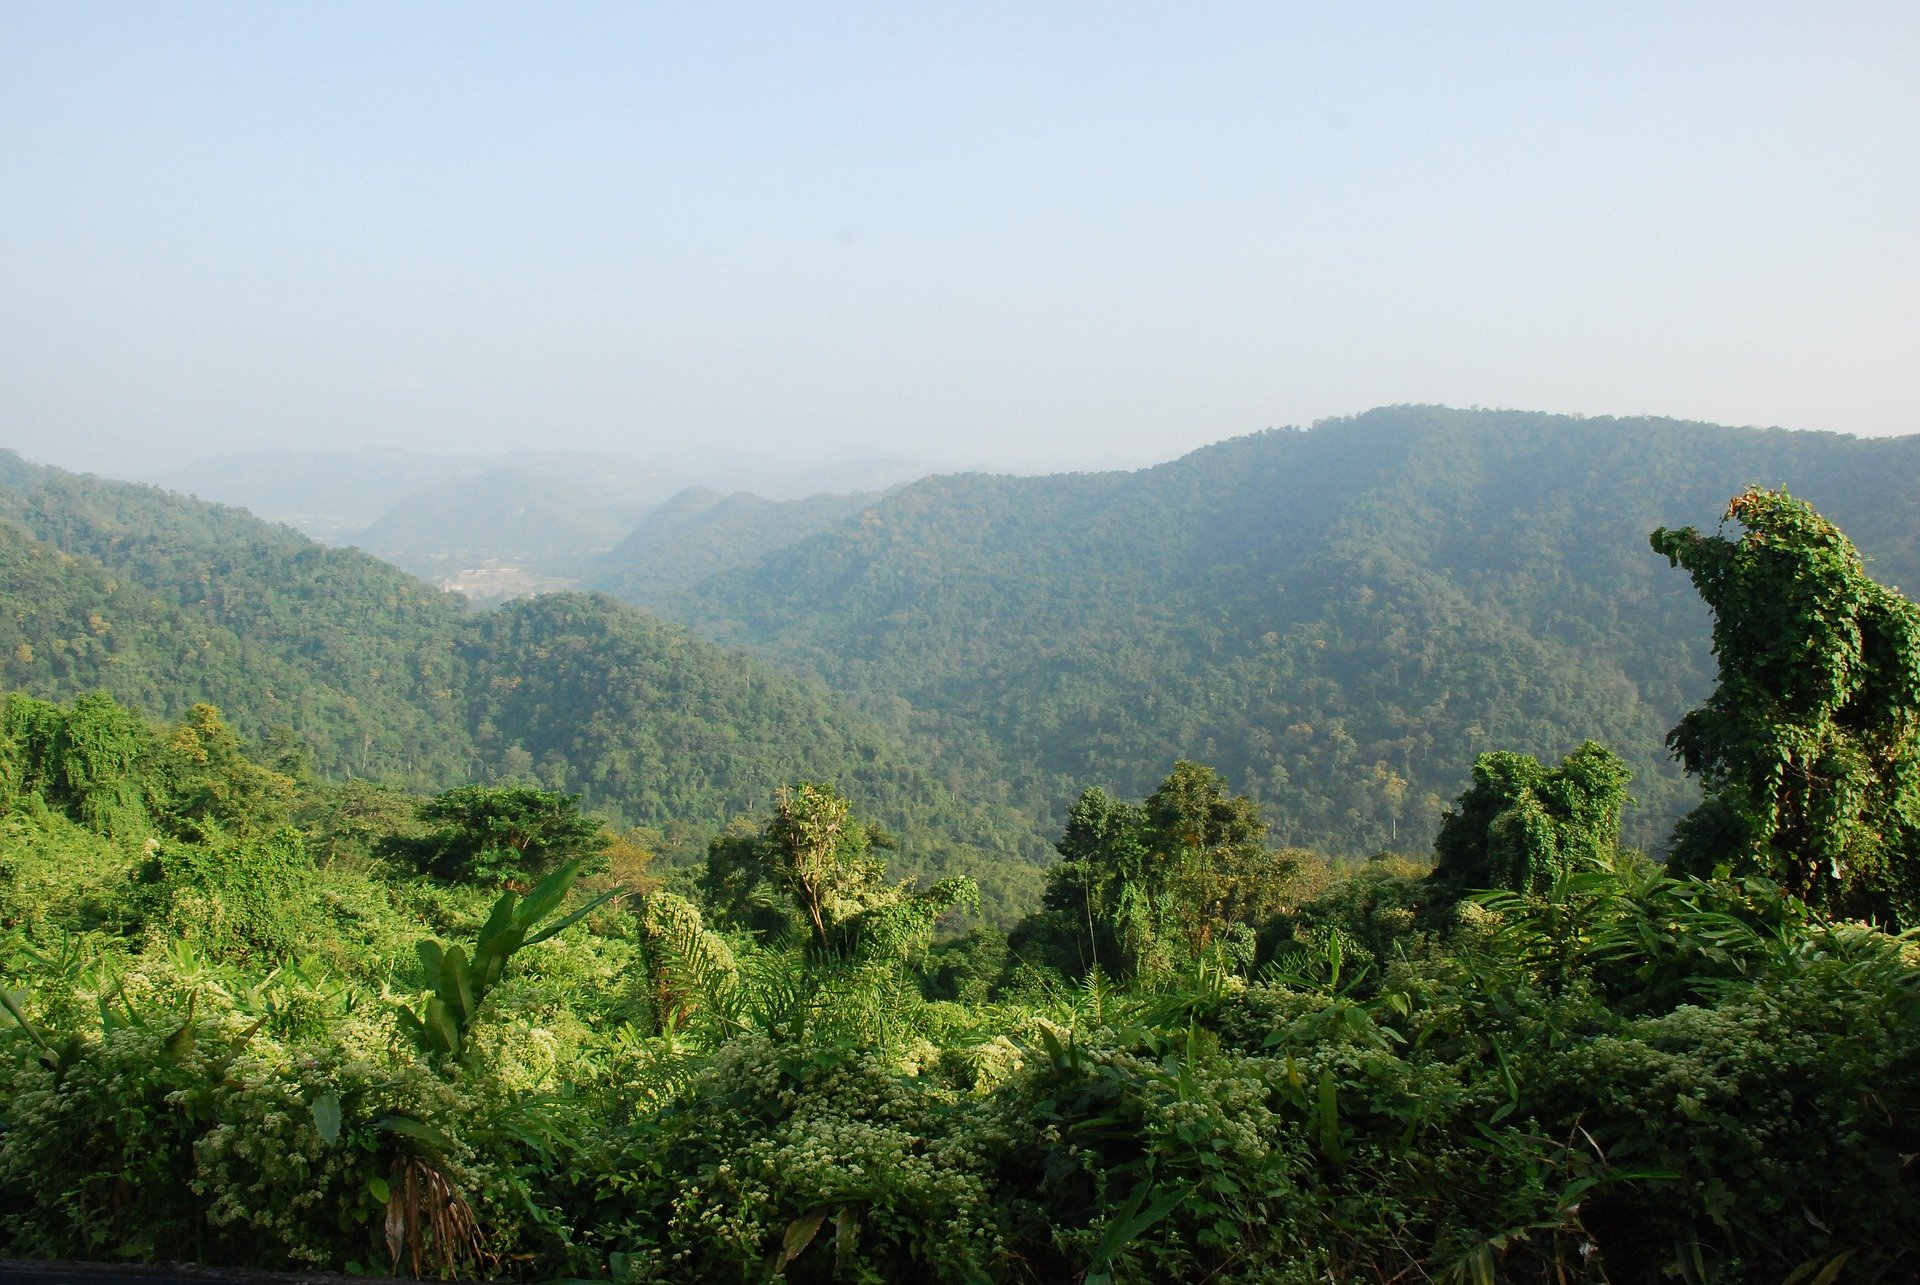 Khao Yai National Park is around 40 minutes by road from Pak Chong town